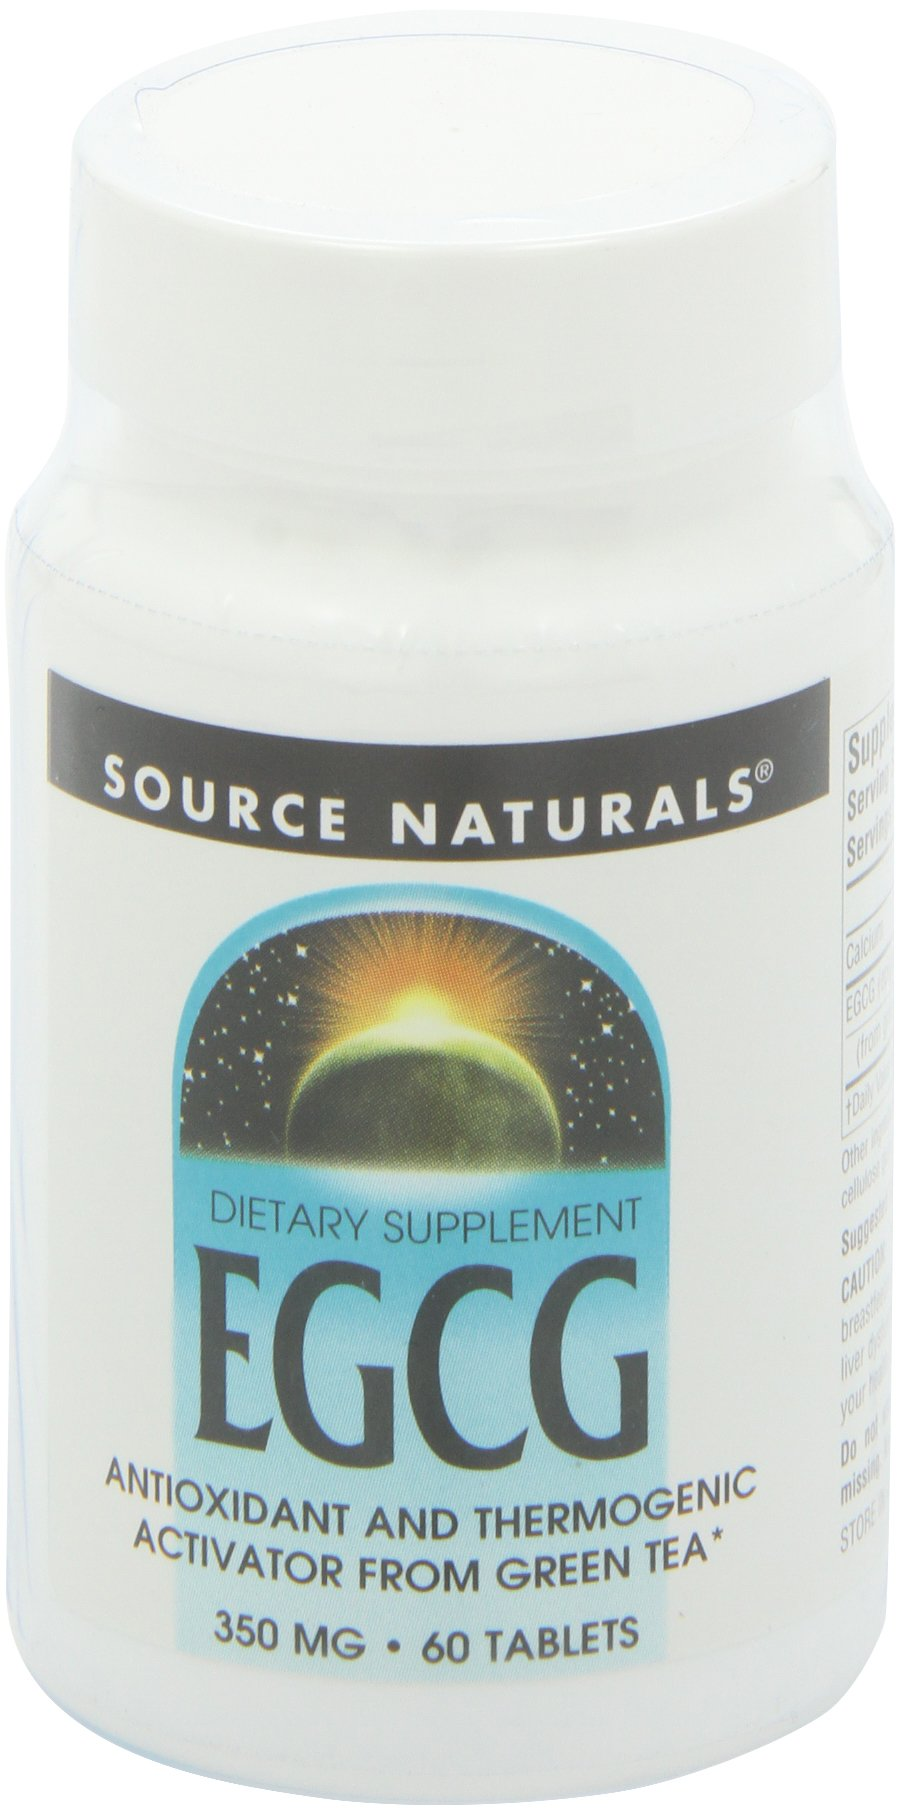 Source Naturals EGCG From Green Tea 350mg, 60 Tablets